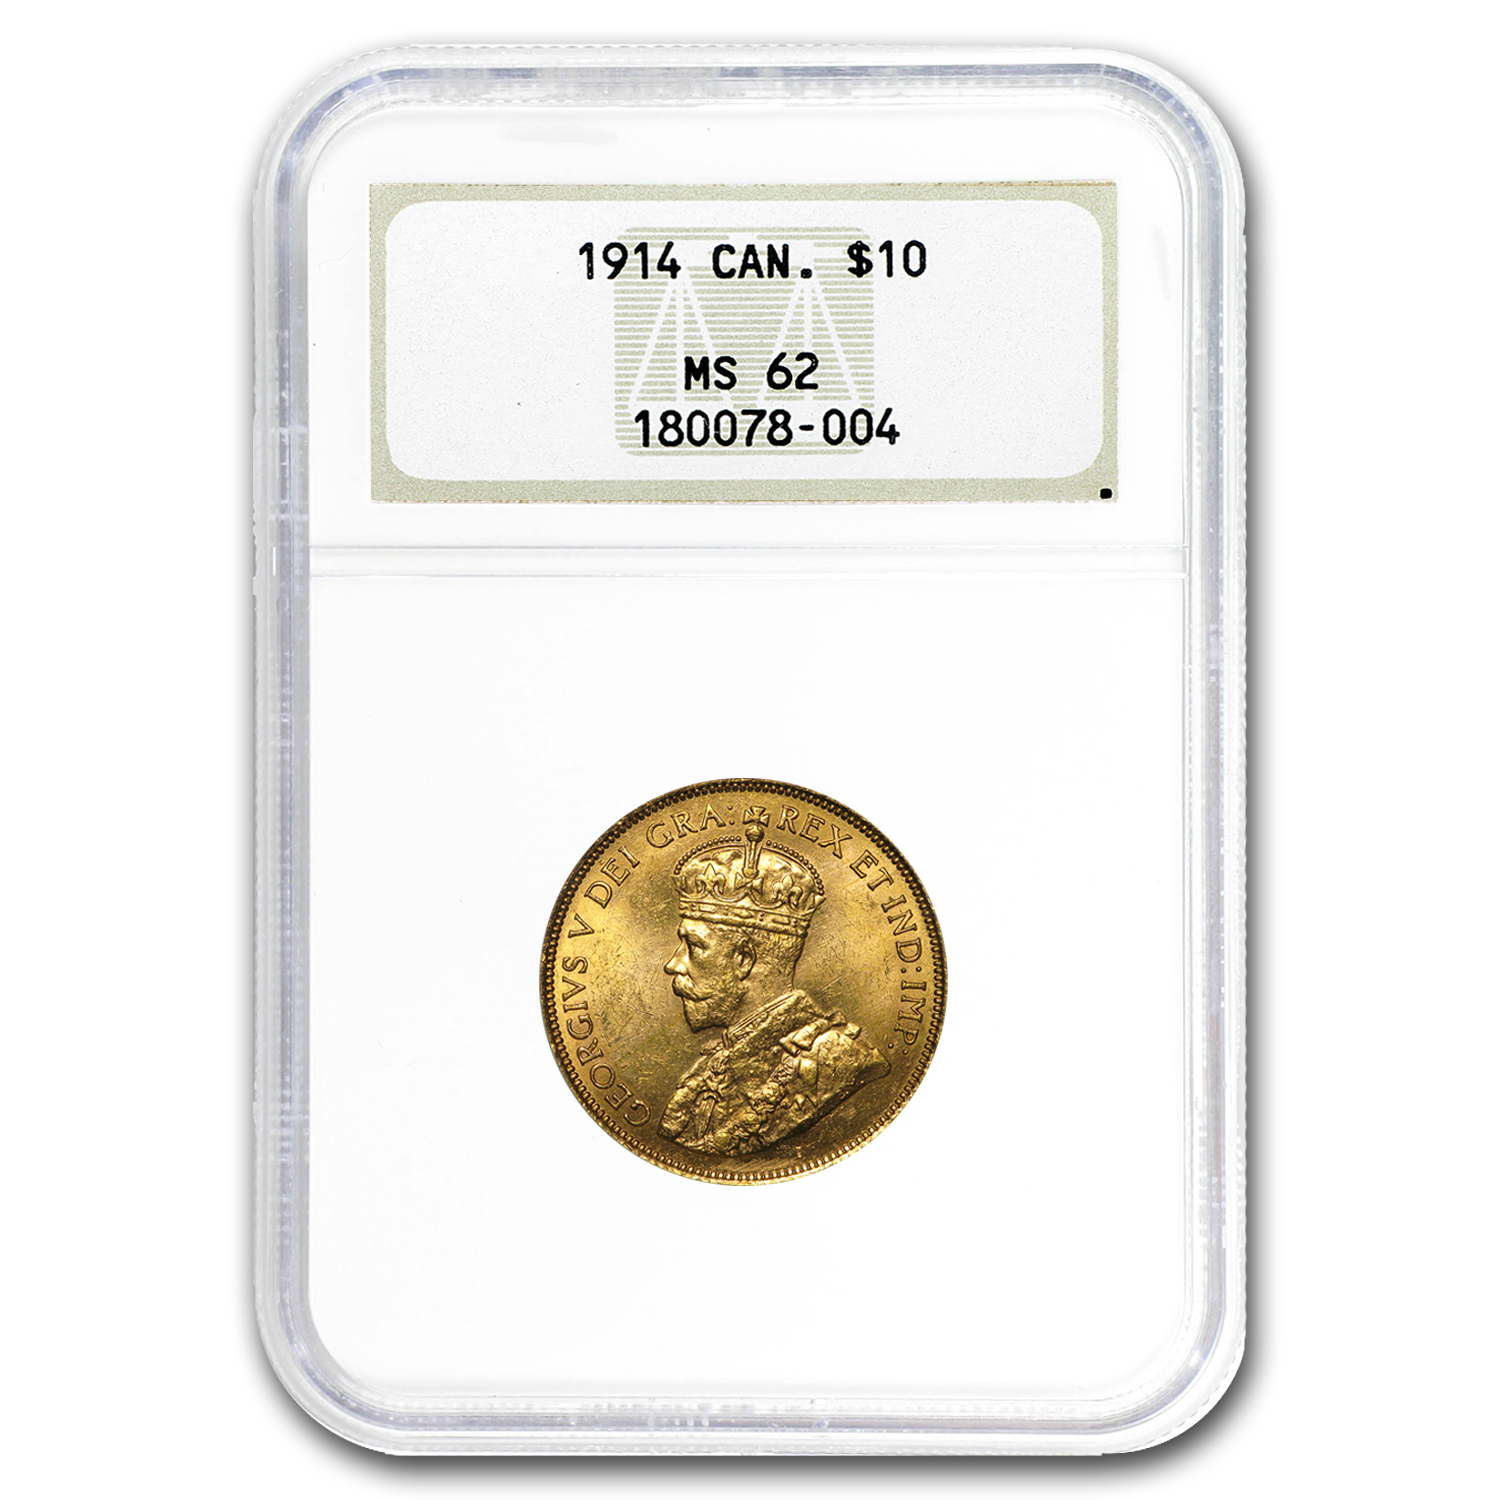 1914 Canada Gold $10 MS-62 NGC